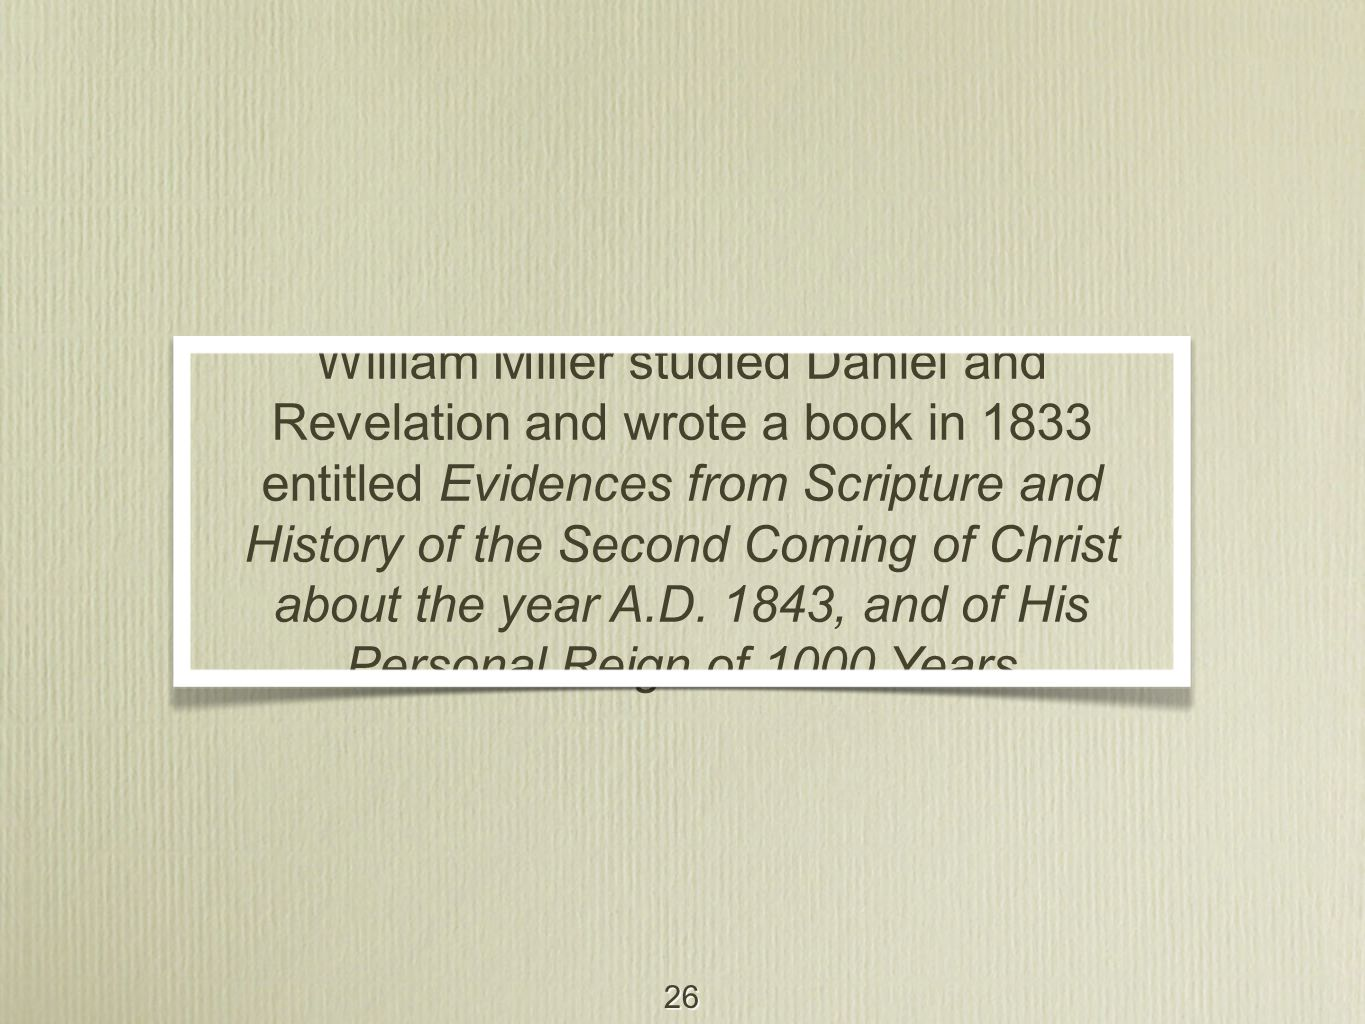 26 William Miller studied Daniel and Revelation and wrote a book in 1833 entitled Evidences from Scripture and History of the Second Coming of Christ about the year A.D.